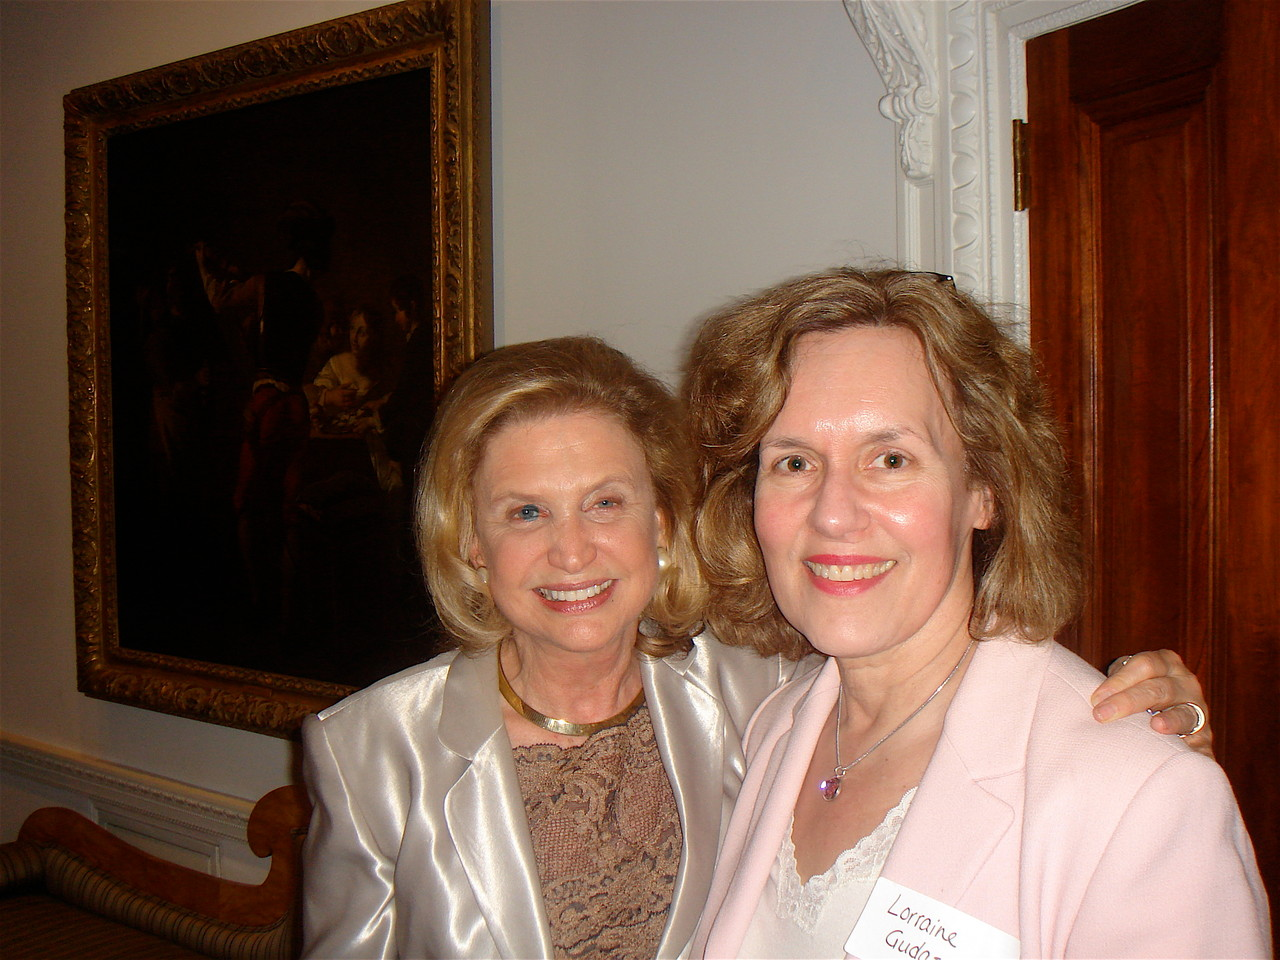 US Representative Carolyn Maloney and Dr. Lorraine Gudas, 2010 ??